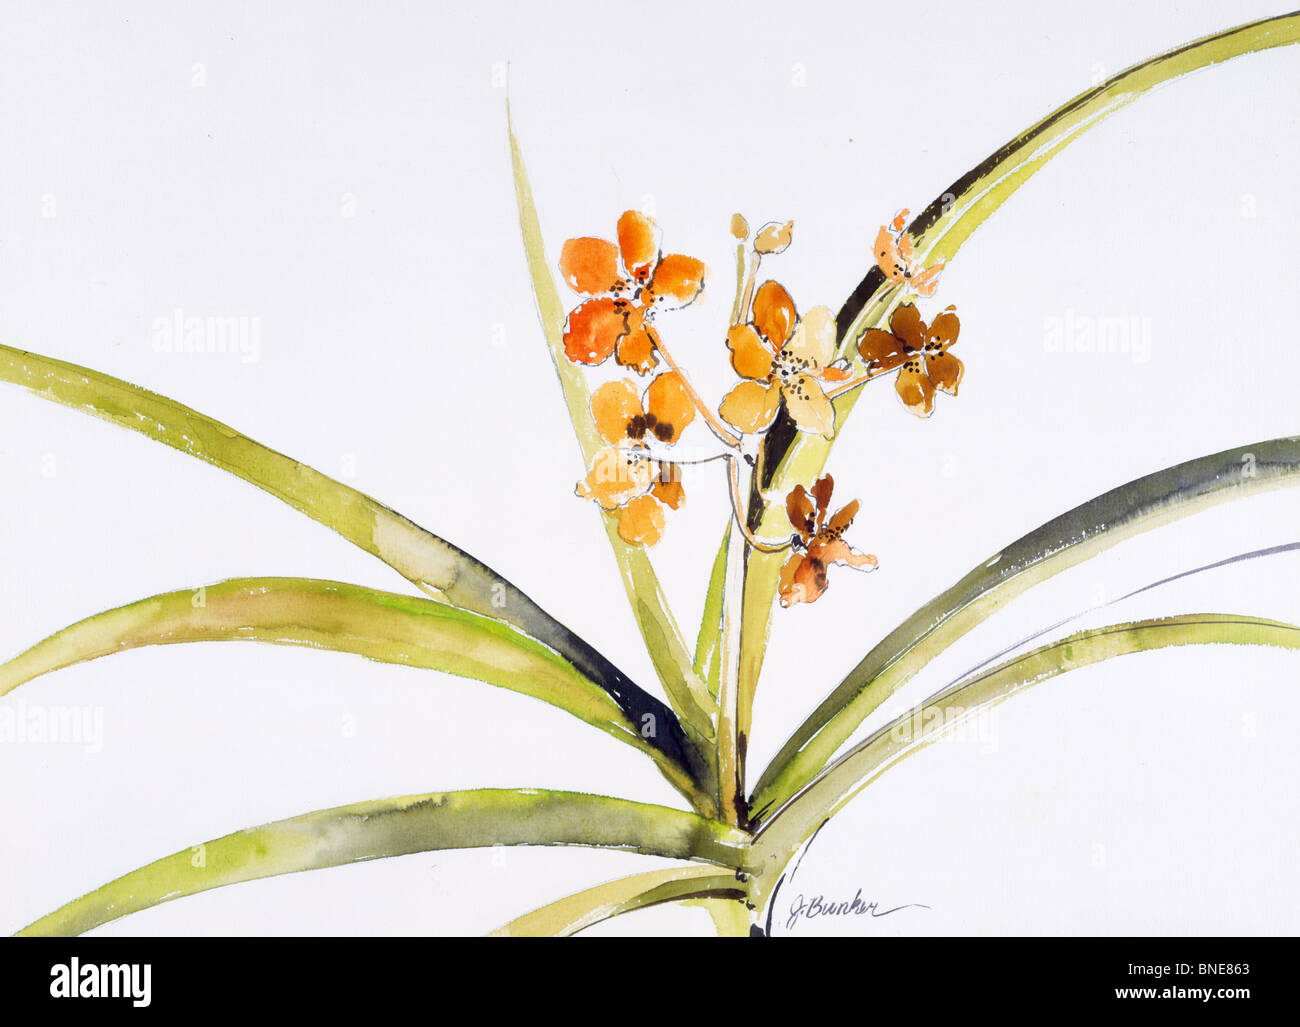 Golden Orchid I by John Bunker, watercolor, 1990 Stock Photo